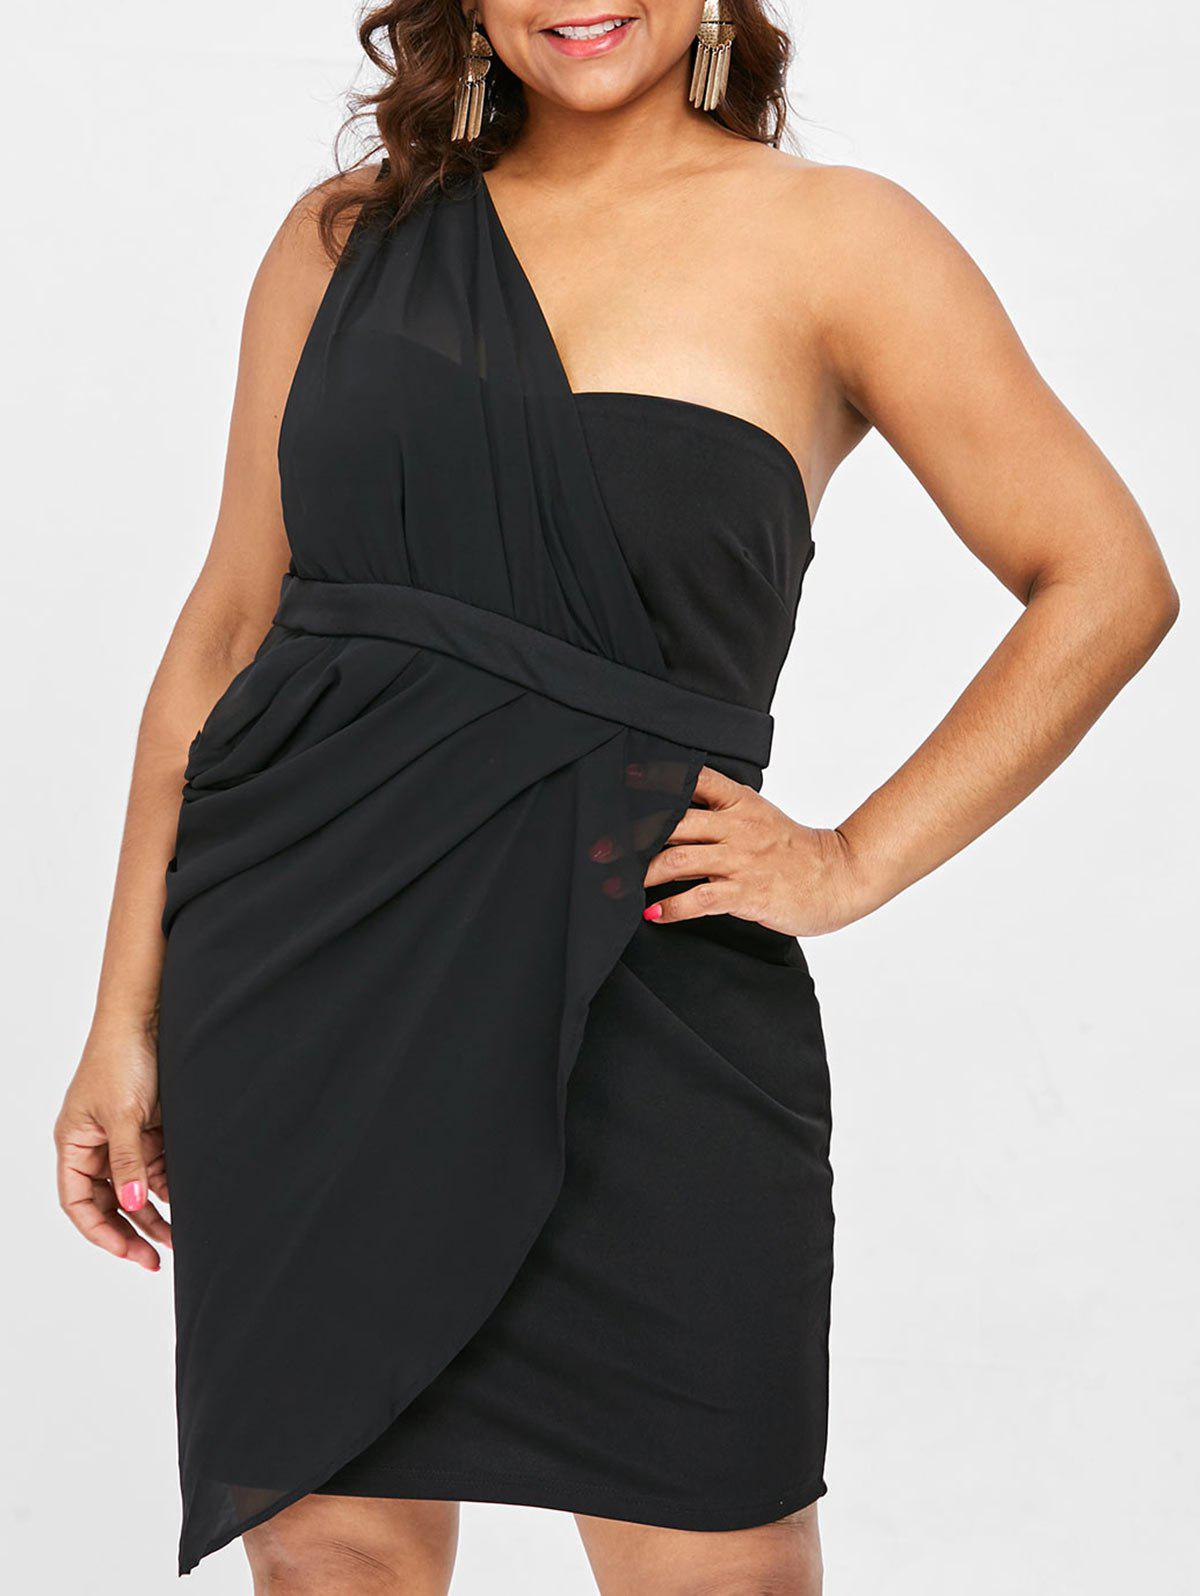 Fashion One Shoulder Plus Size Draped Party Dress